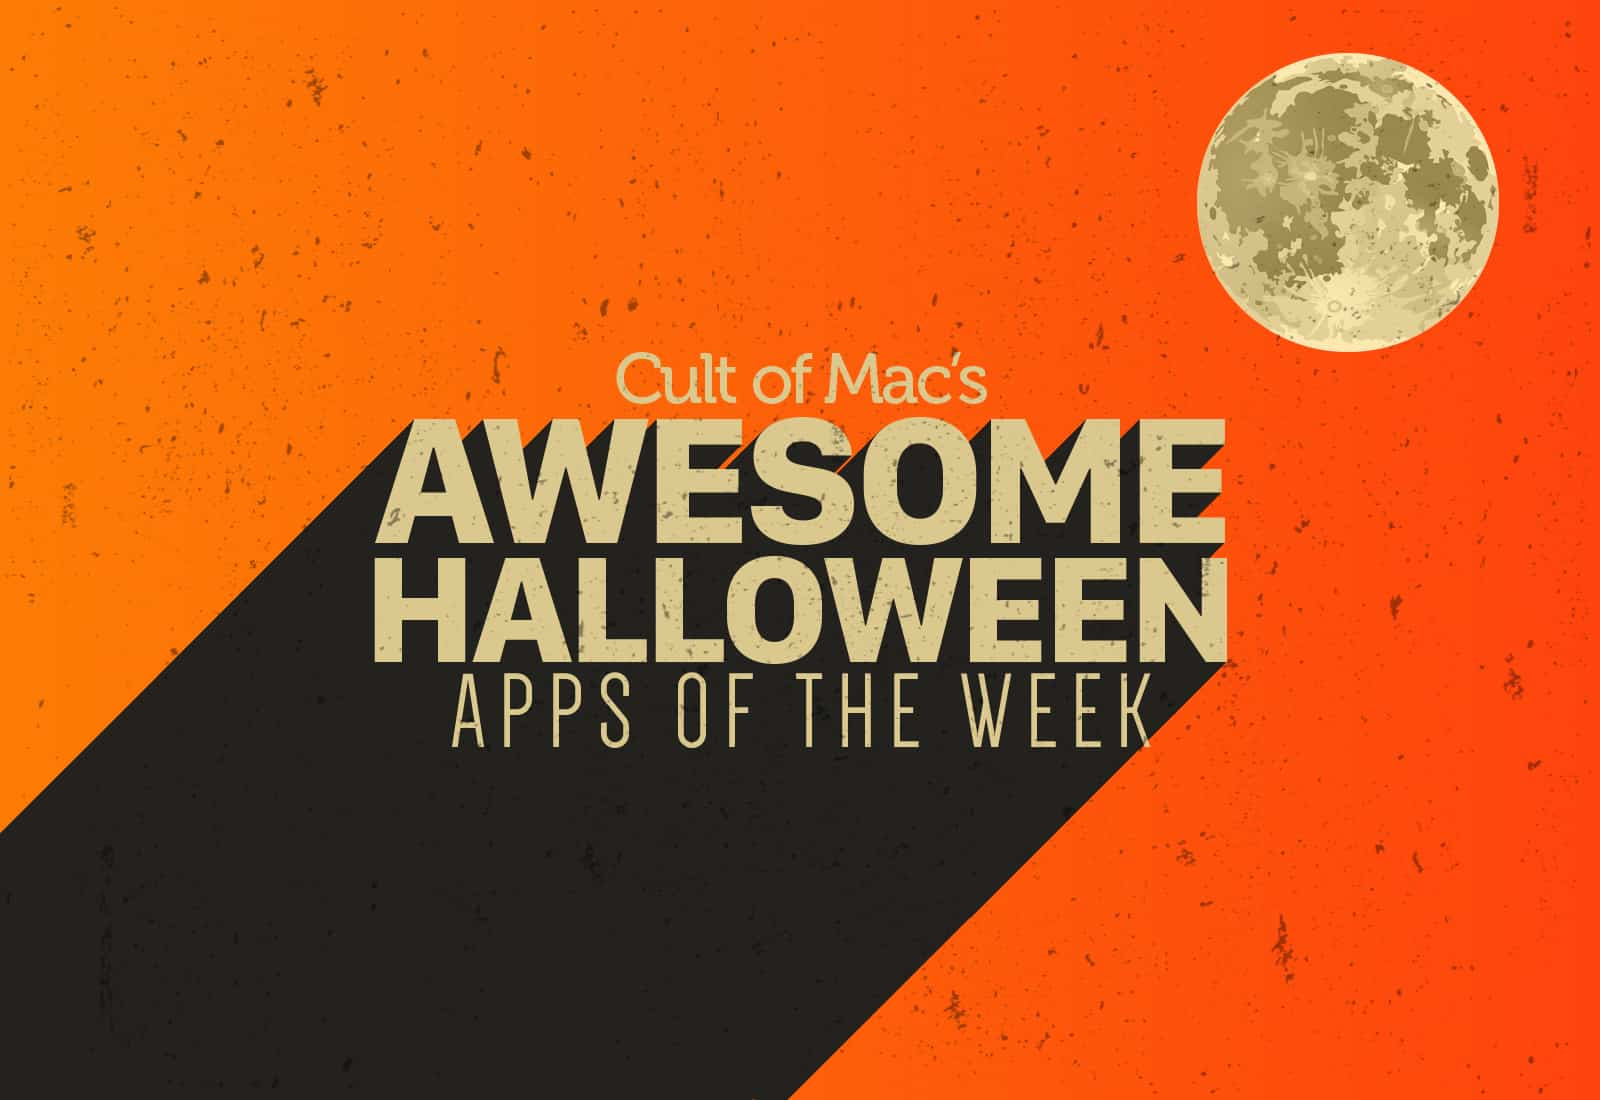 night terrors, death road to canada, and other spooky halloween apps